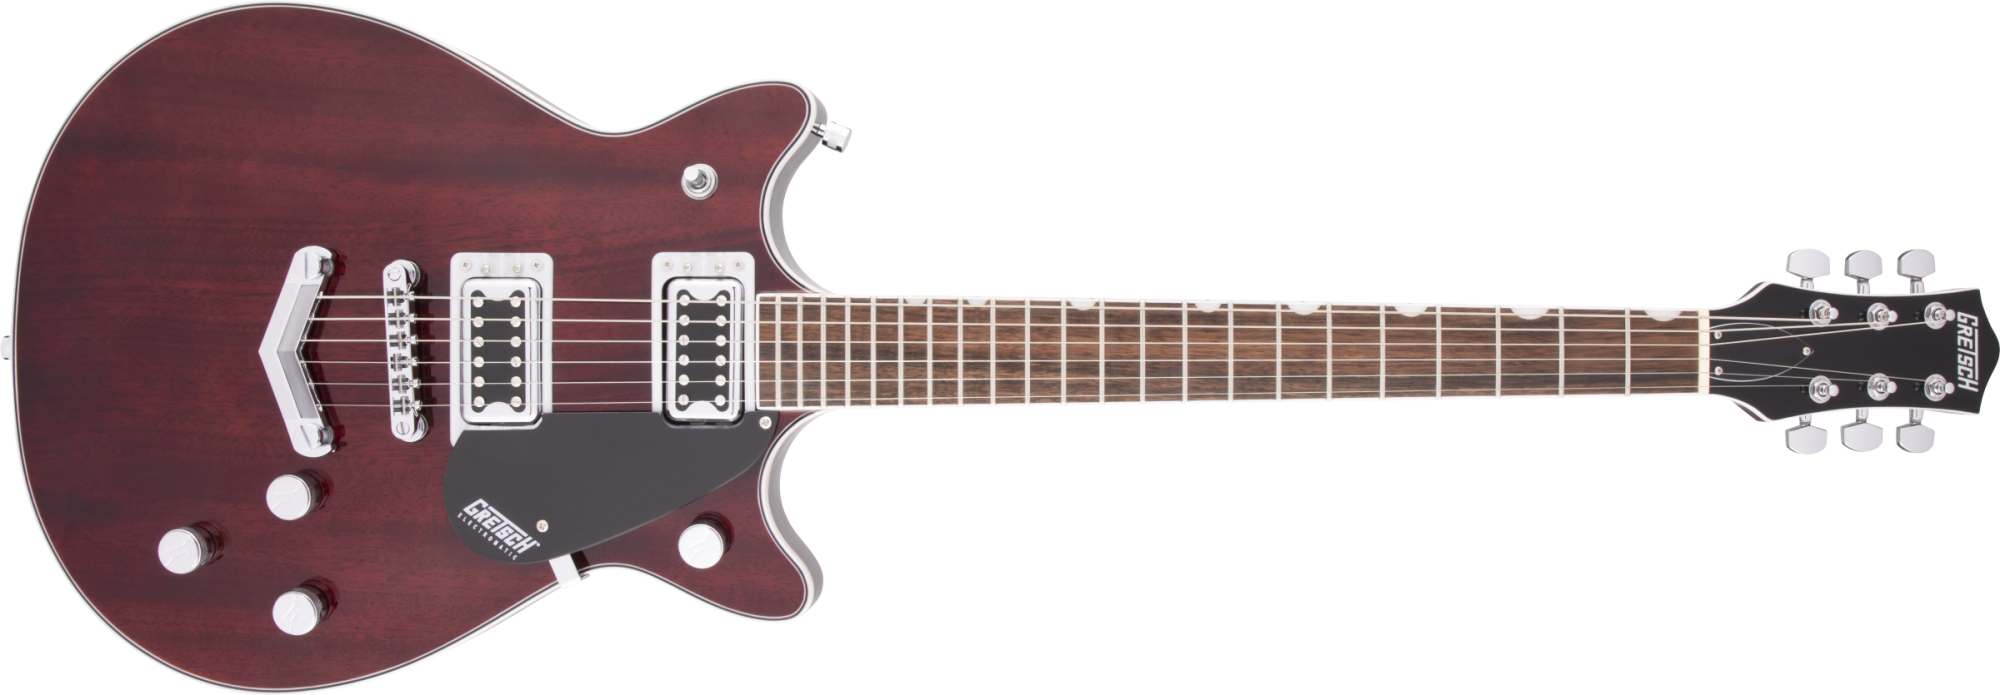 Gretsch G5222 Electromatic Double Jet BT w/V-Stoptail